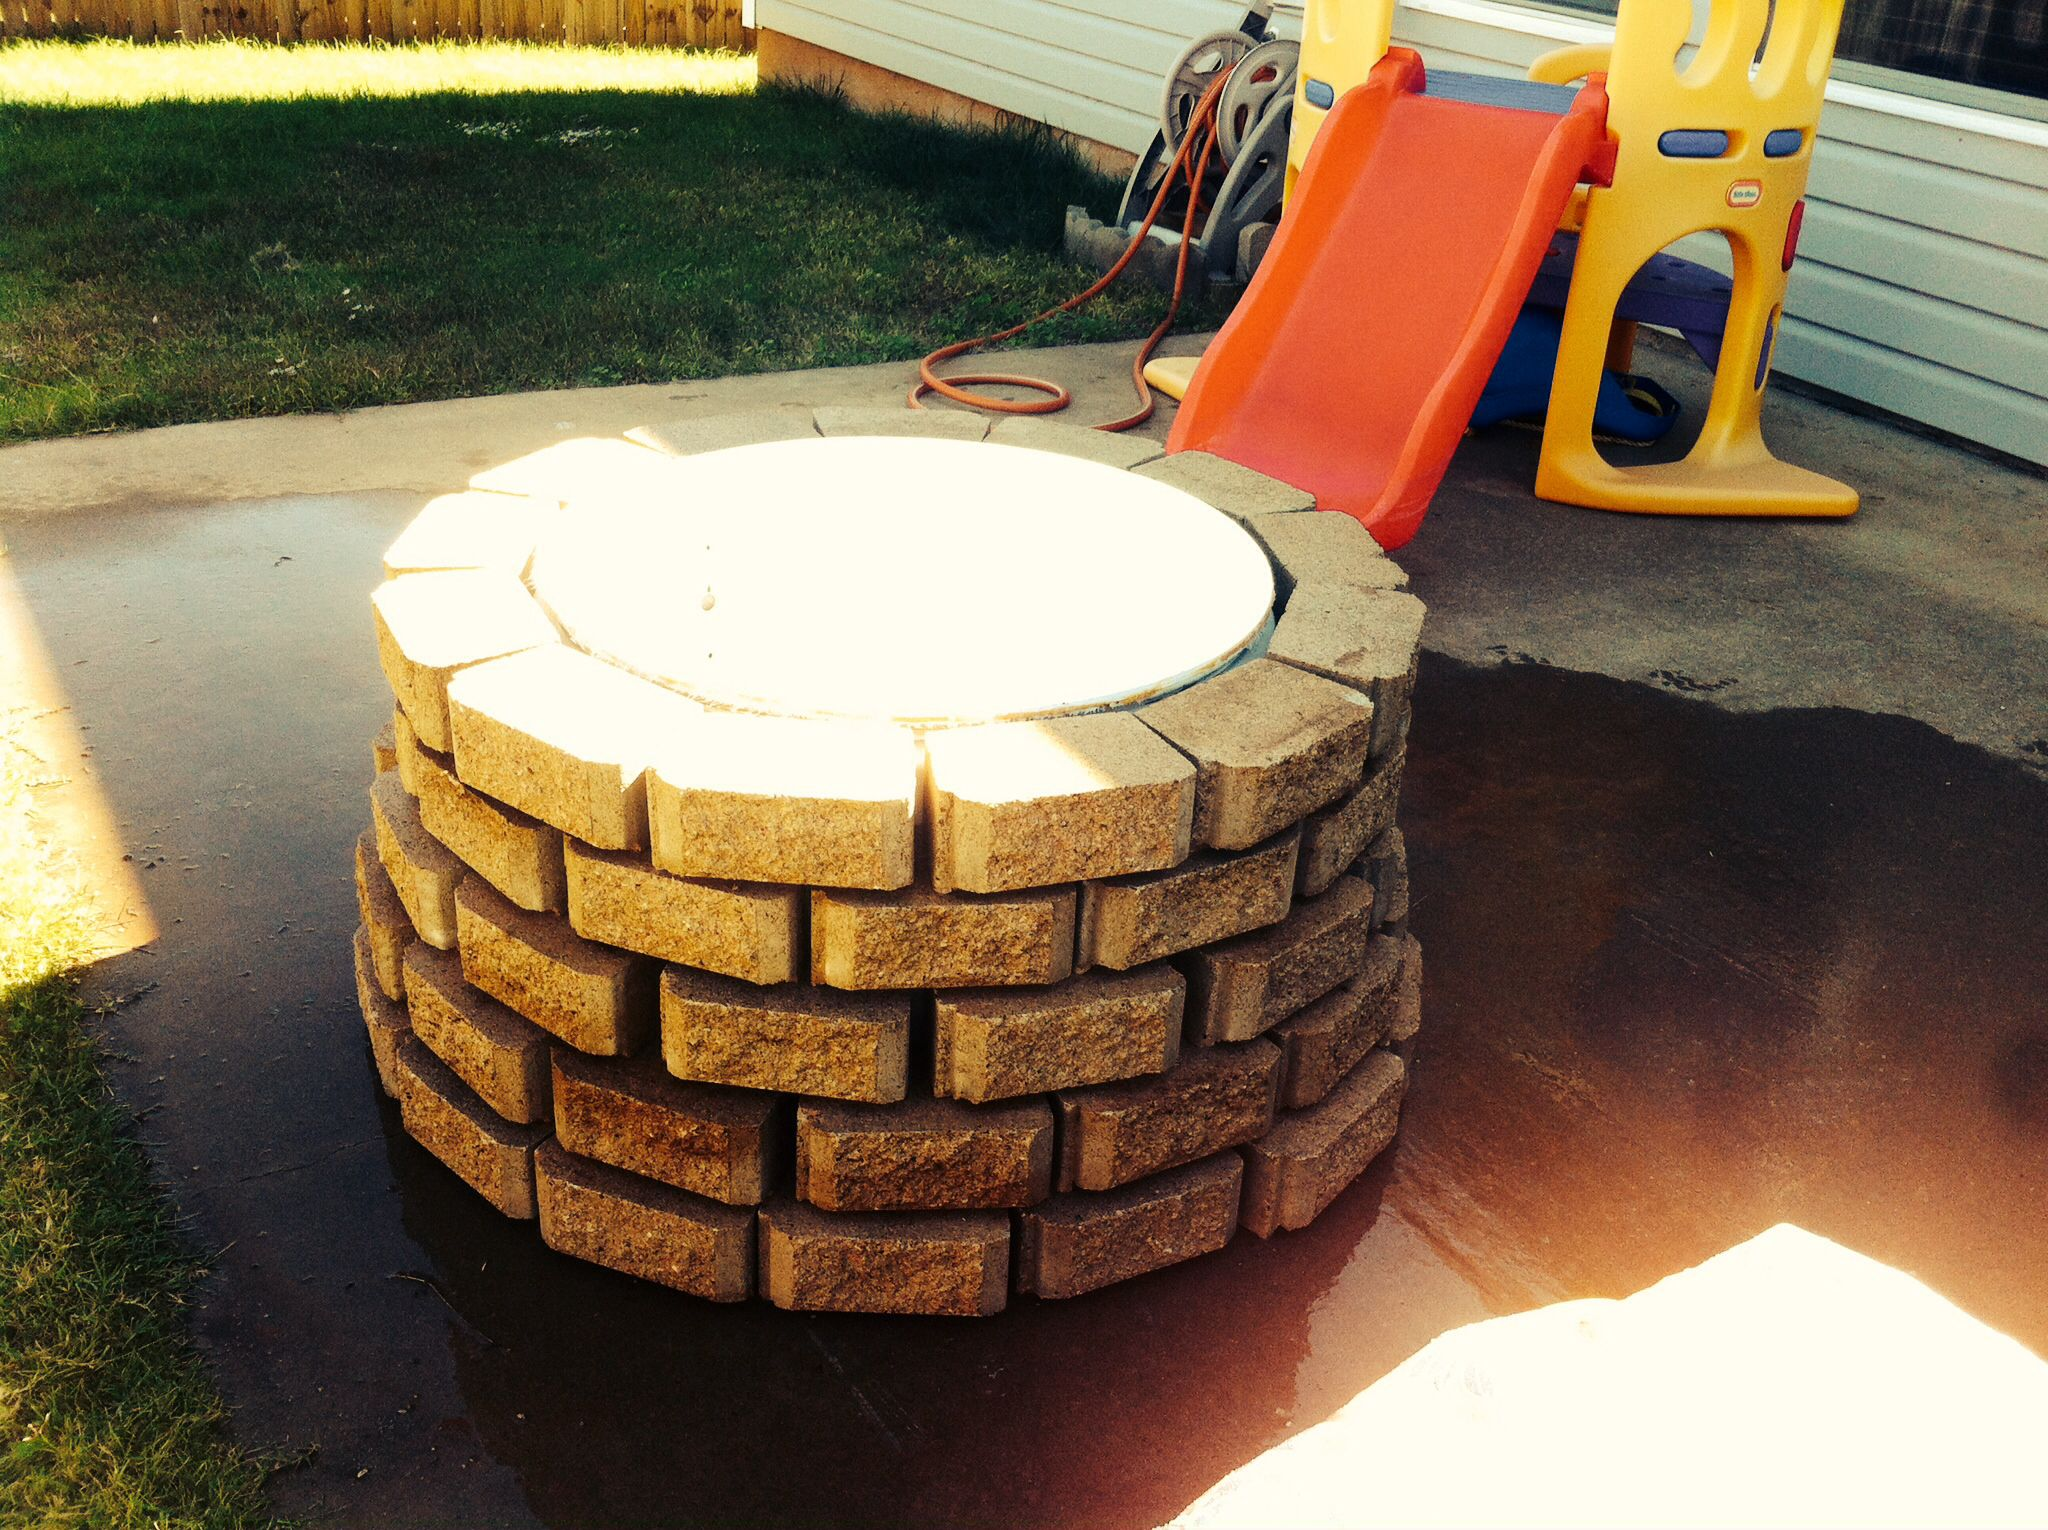 My DIY firepit, just a dryer drum and some landscaping stones, turned out awesome.